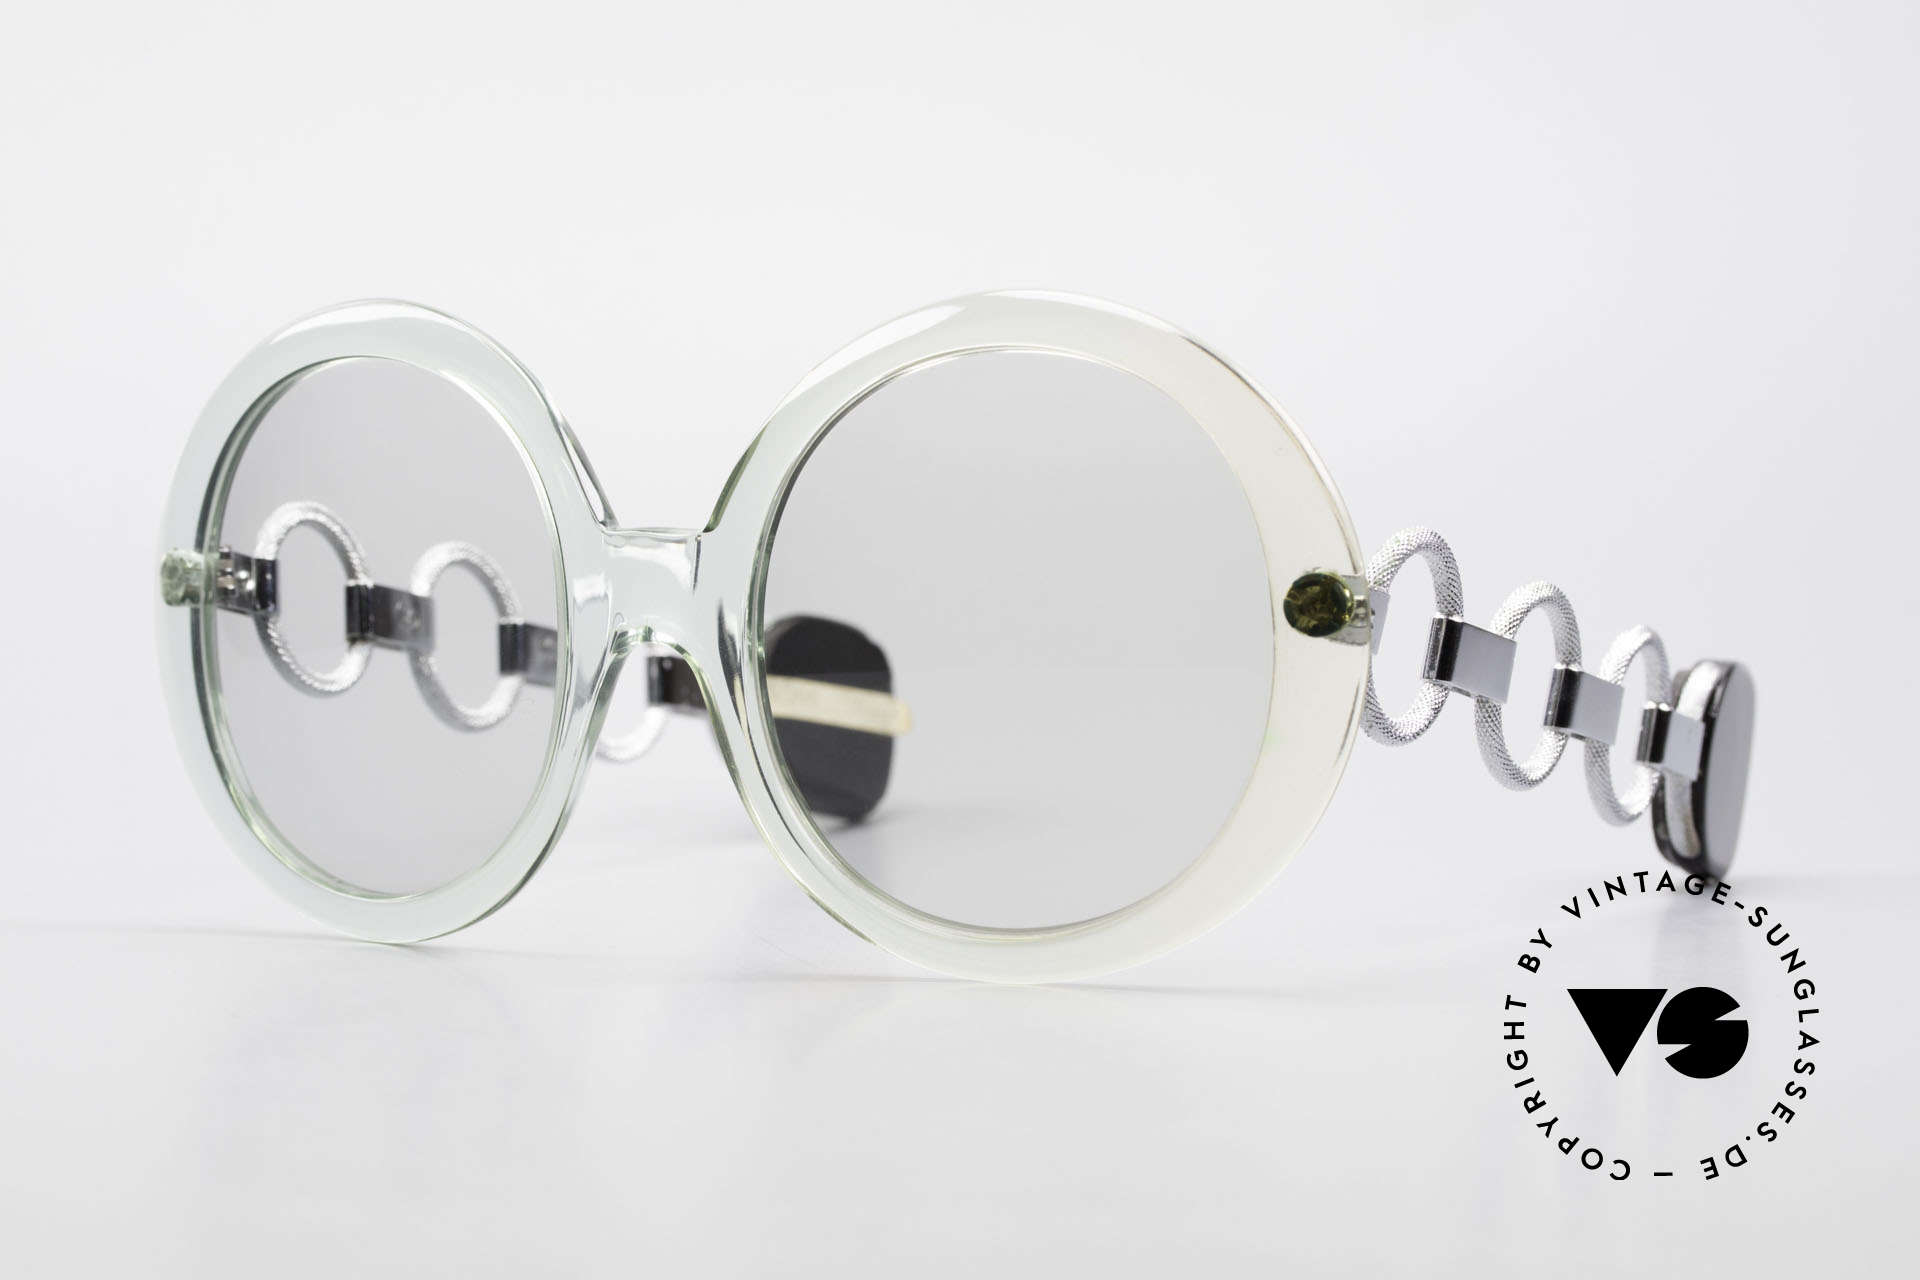 Serge Kirchhofer 461 Original 60's Fashion History, the most famous vintage glasses by Serge Kirchhofer, Made for Women